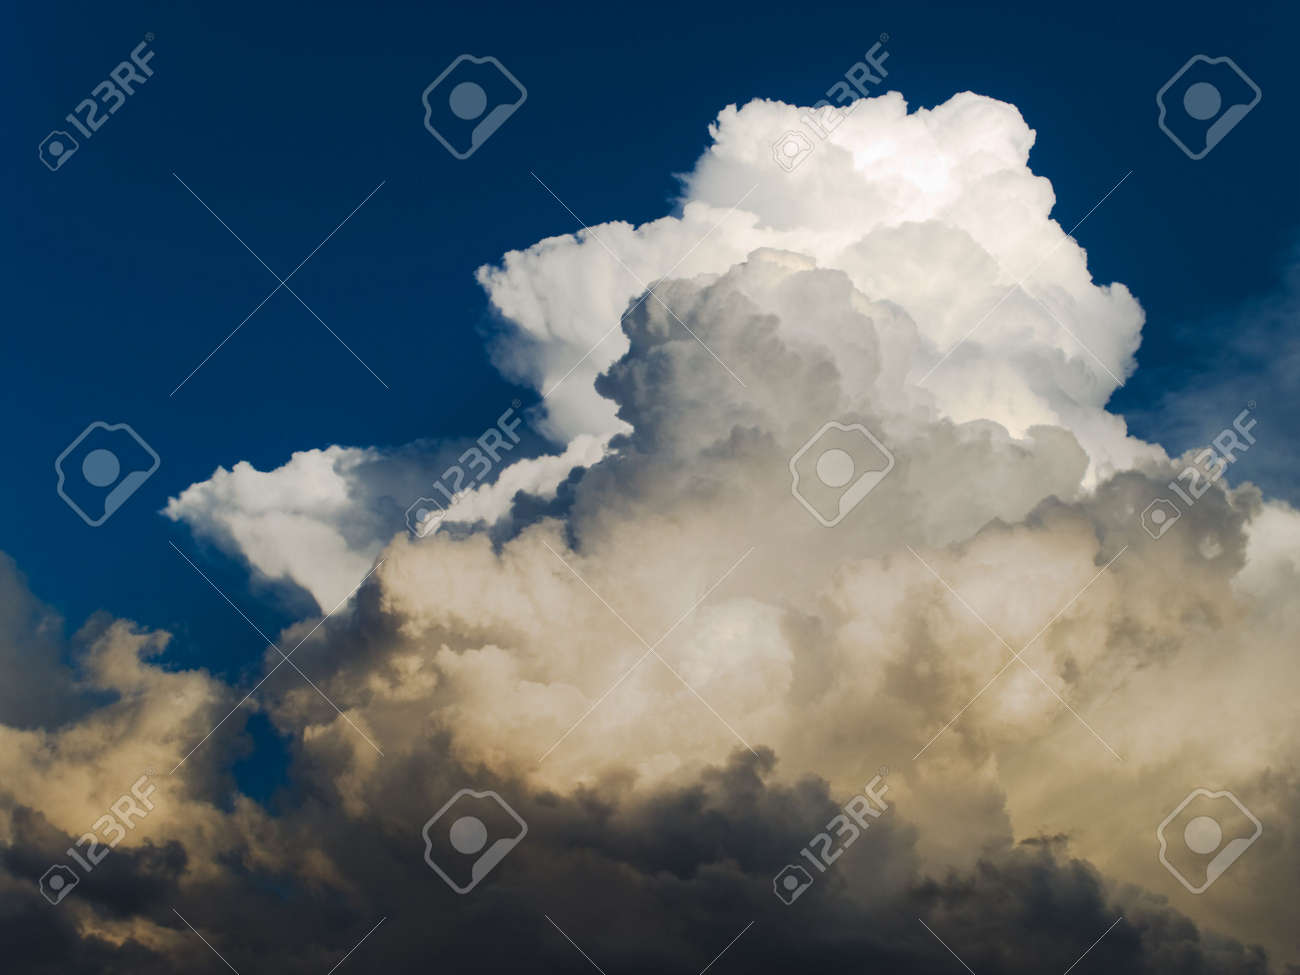 Stratocumulus Clouds Formed Over Blue Sky Before Storm Stock Photo Picture And Royalty Free Image Image 5927618